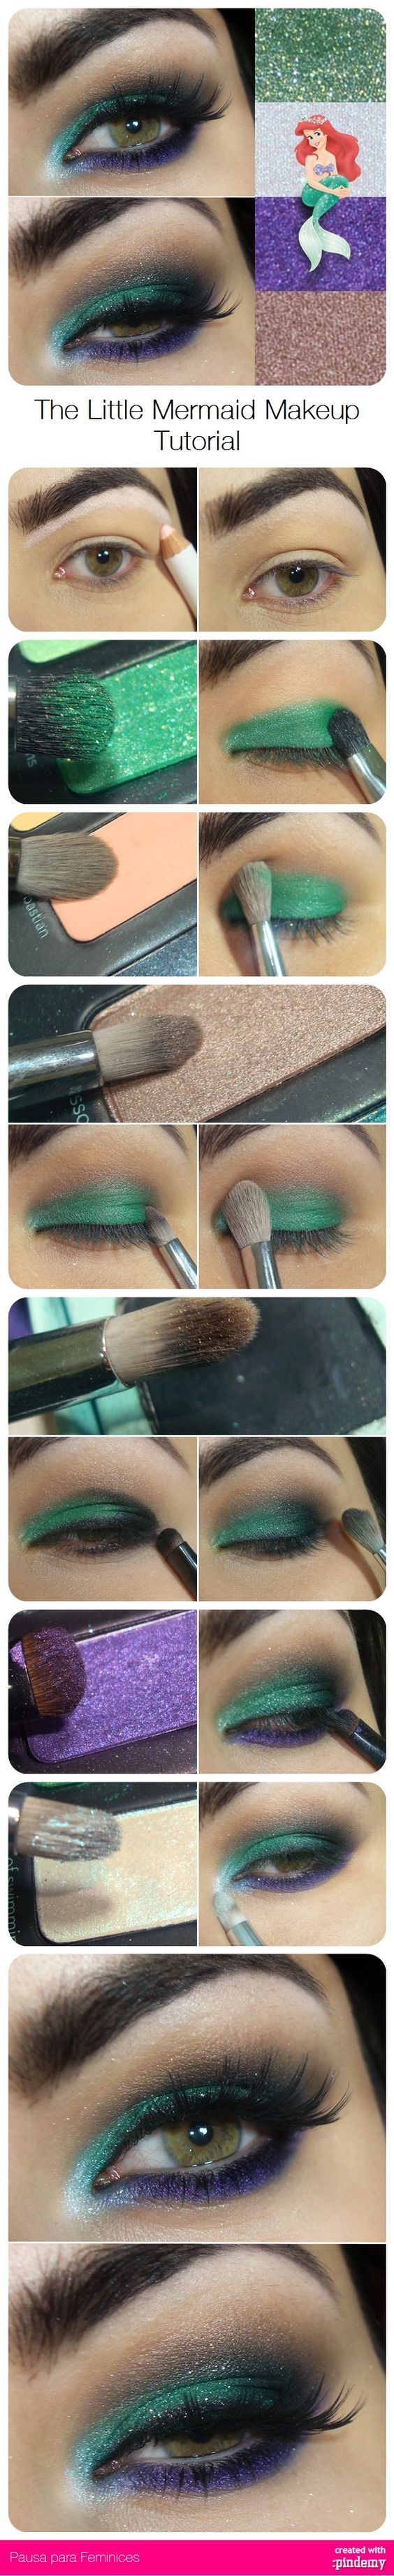 15 Disney Makeup and Hair Tutorials Perfect For Your Halloween Costume